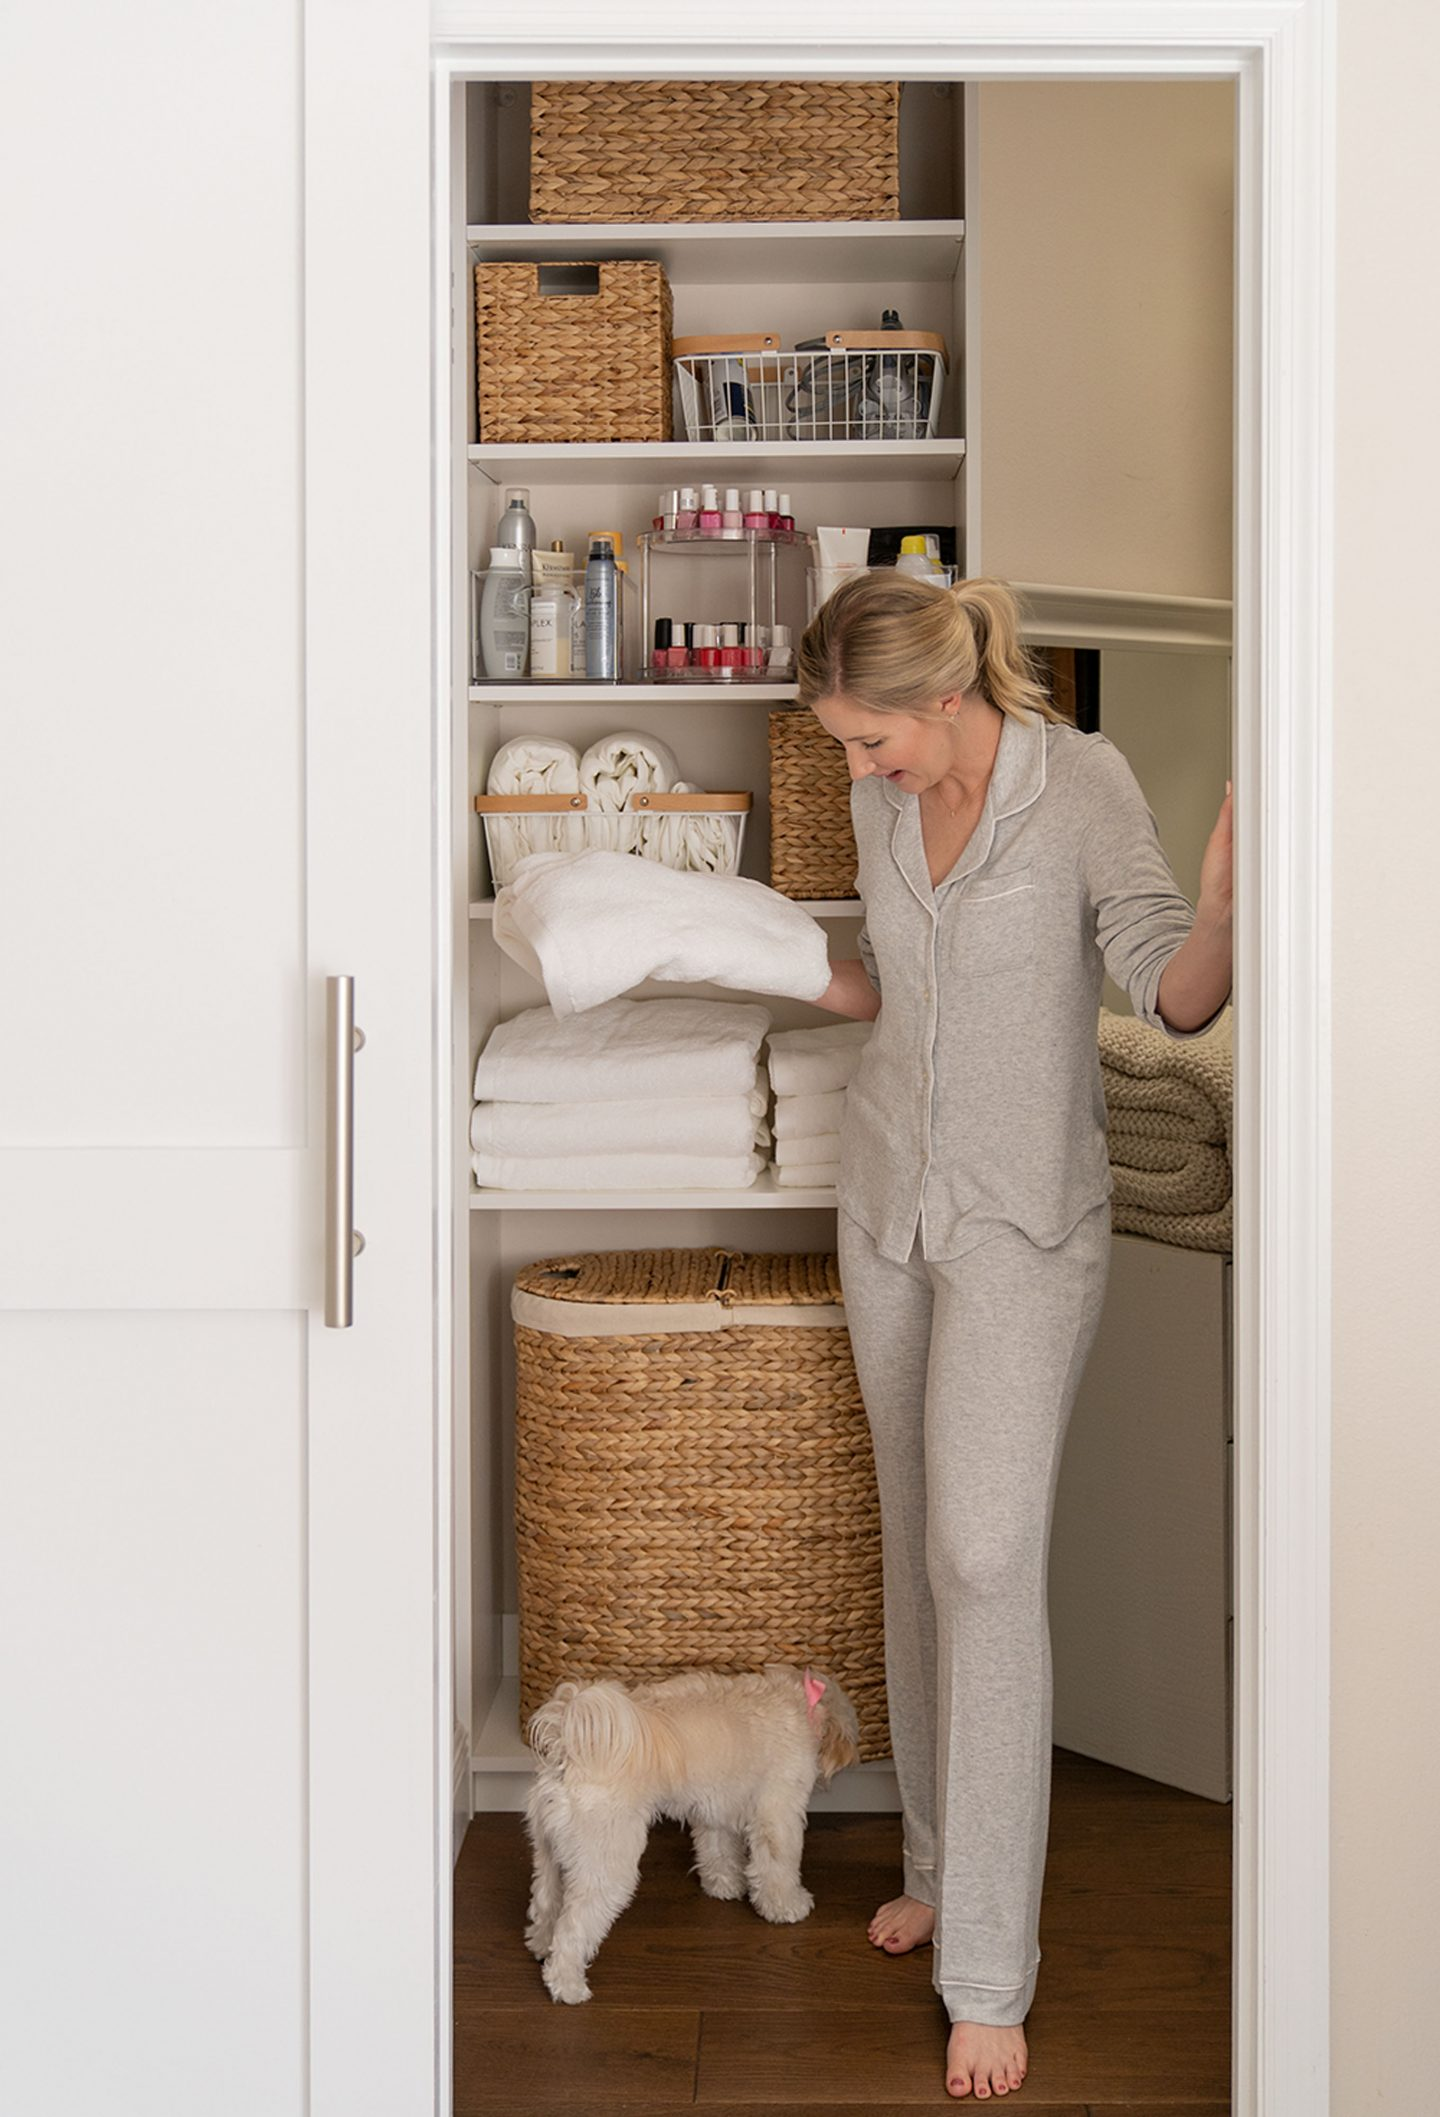 Updating Our New Linen Closet